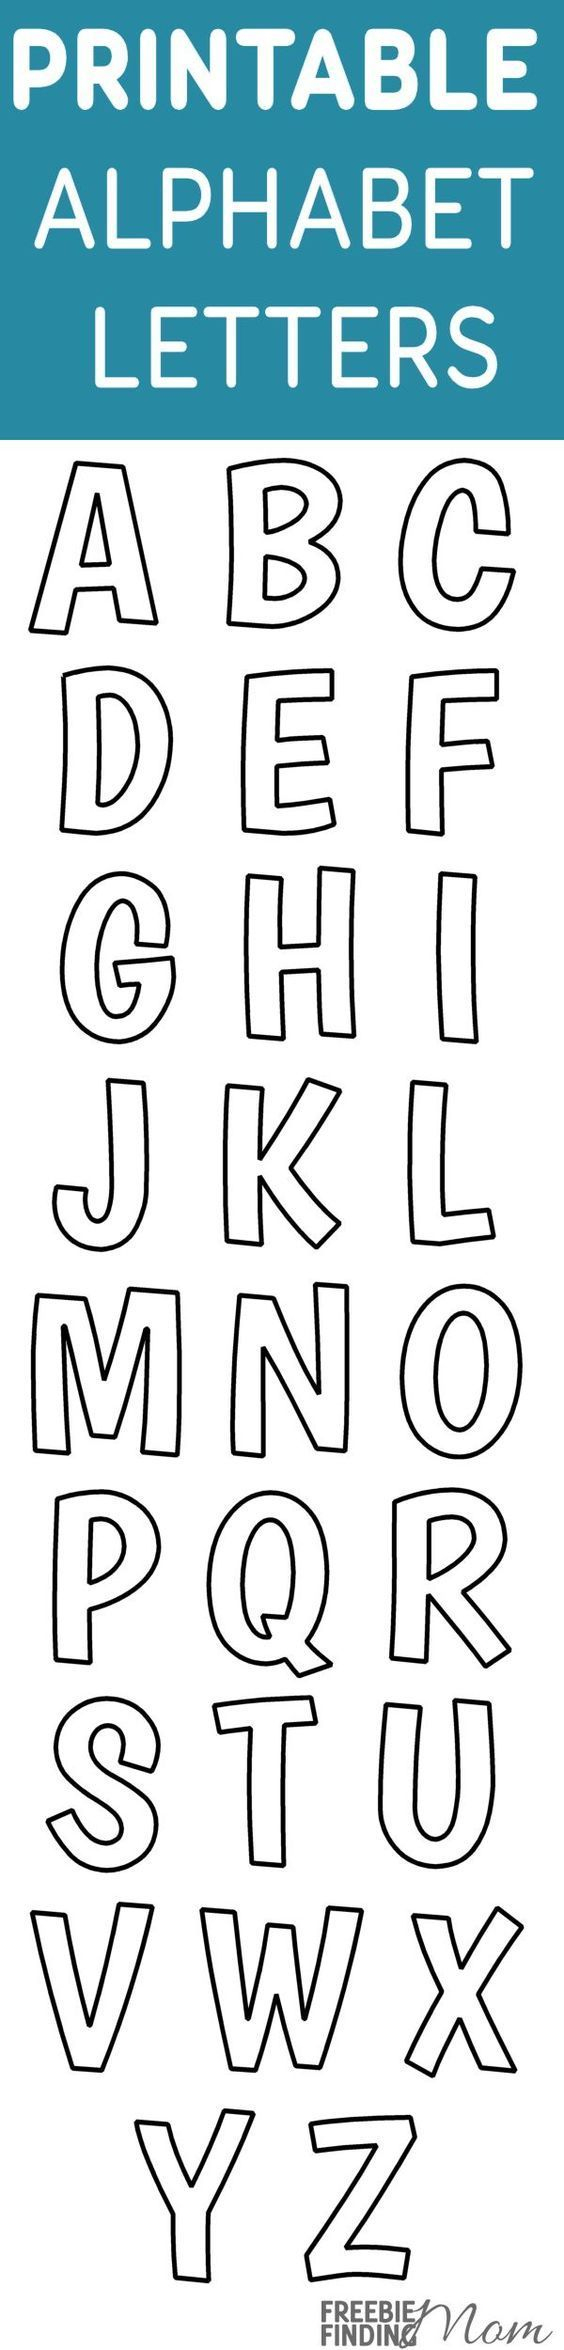 Printable Free Alphabet Templates   The Group Board On Pinterest - Free Printable Letter Stencils